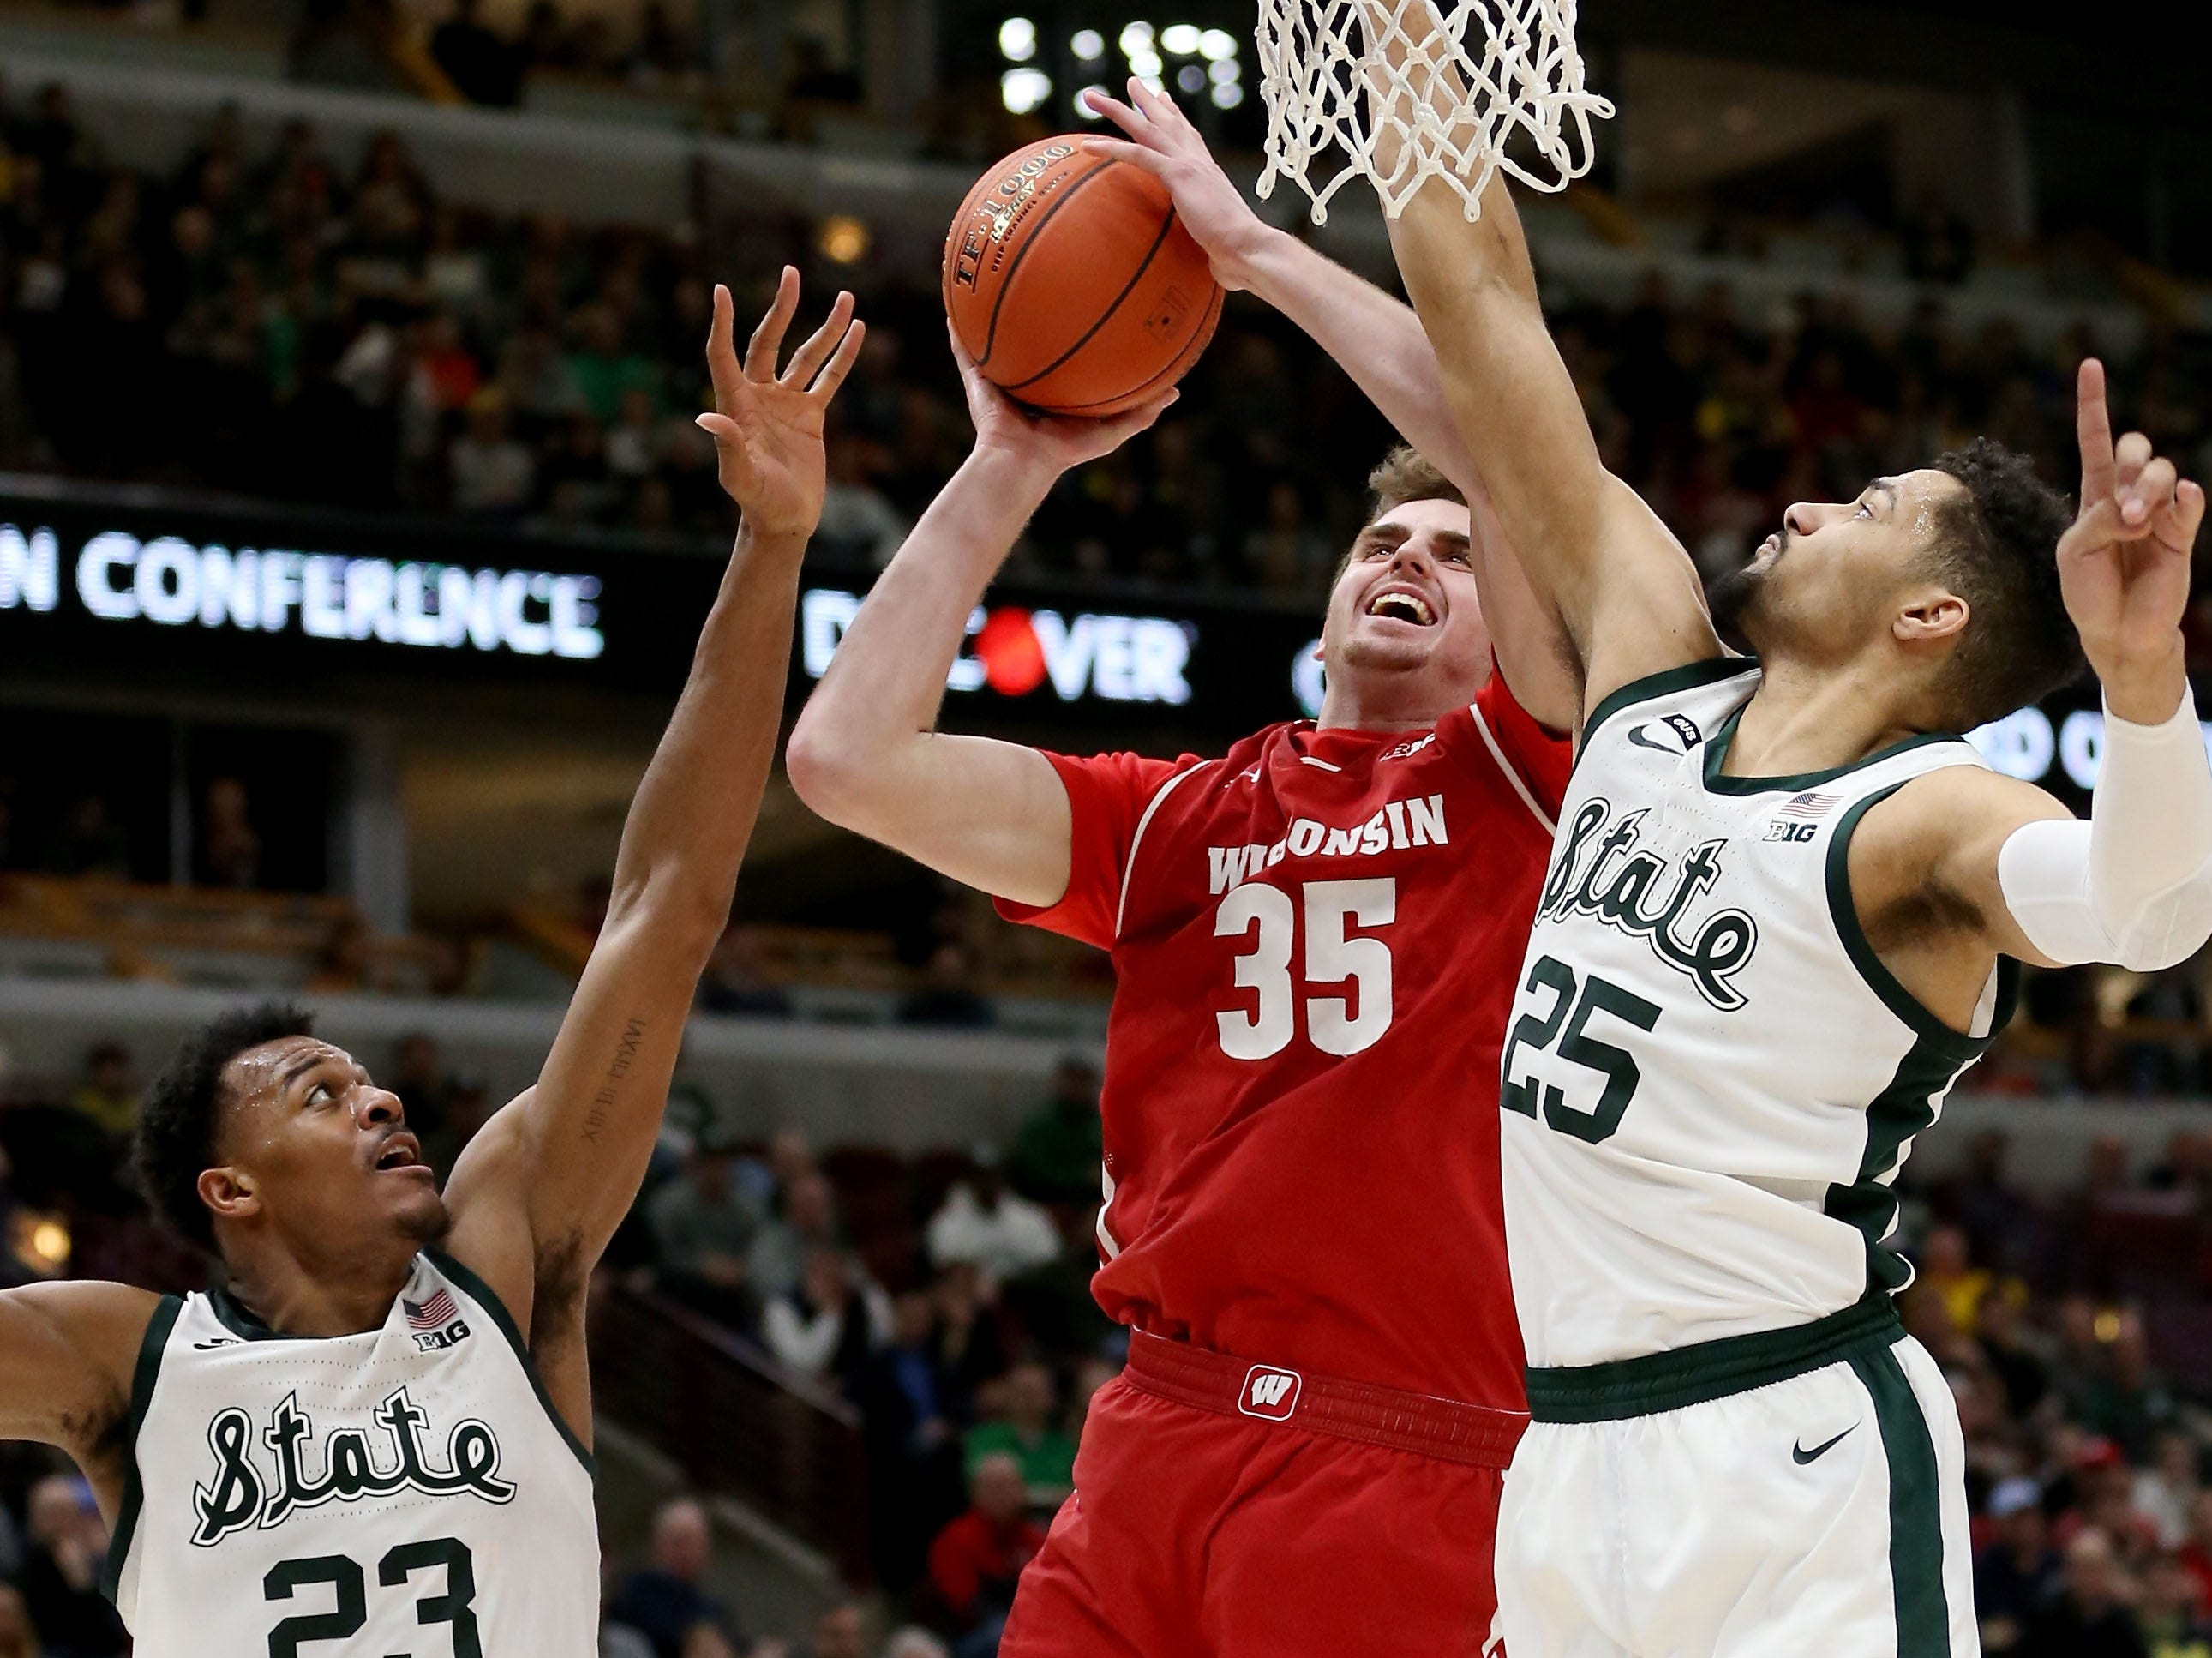 Nate Reuvers #35 of the Wisconsin Badgers attempts a shot while being guarded by Xavier Tillman #23 and Kenny Goins #25 of the Michigan State Spartans in the second half during the semifinals of the Big Ten Basketball Tournament at the United Center on March 16, 2019 in Chicago, Illinois.